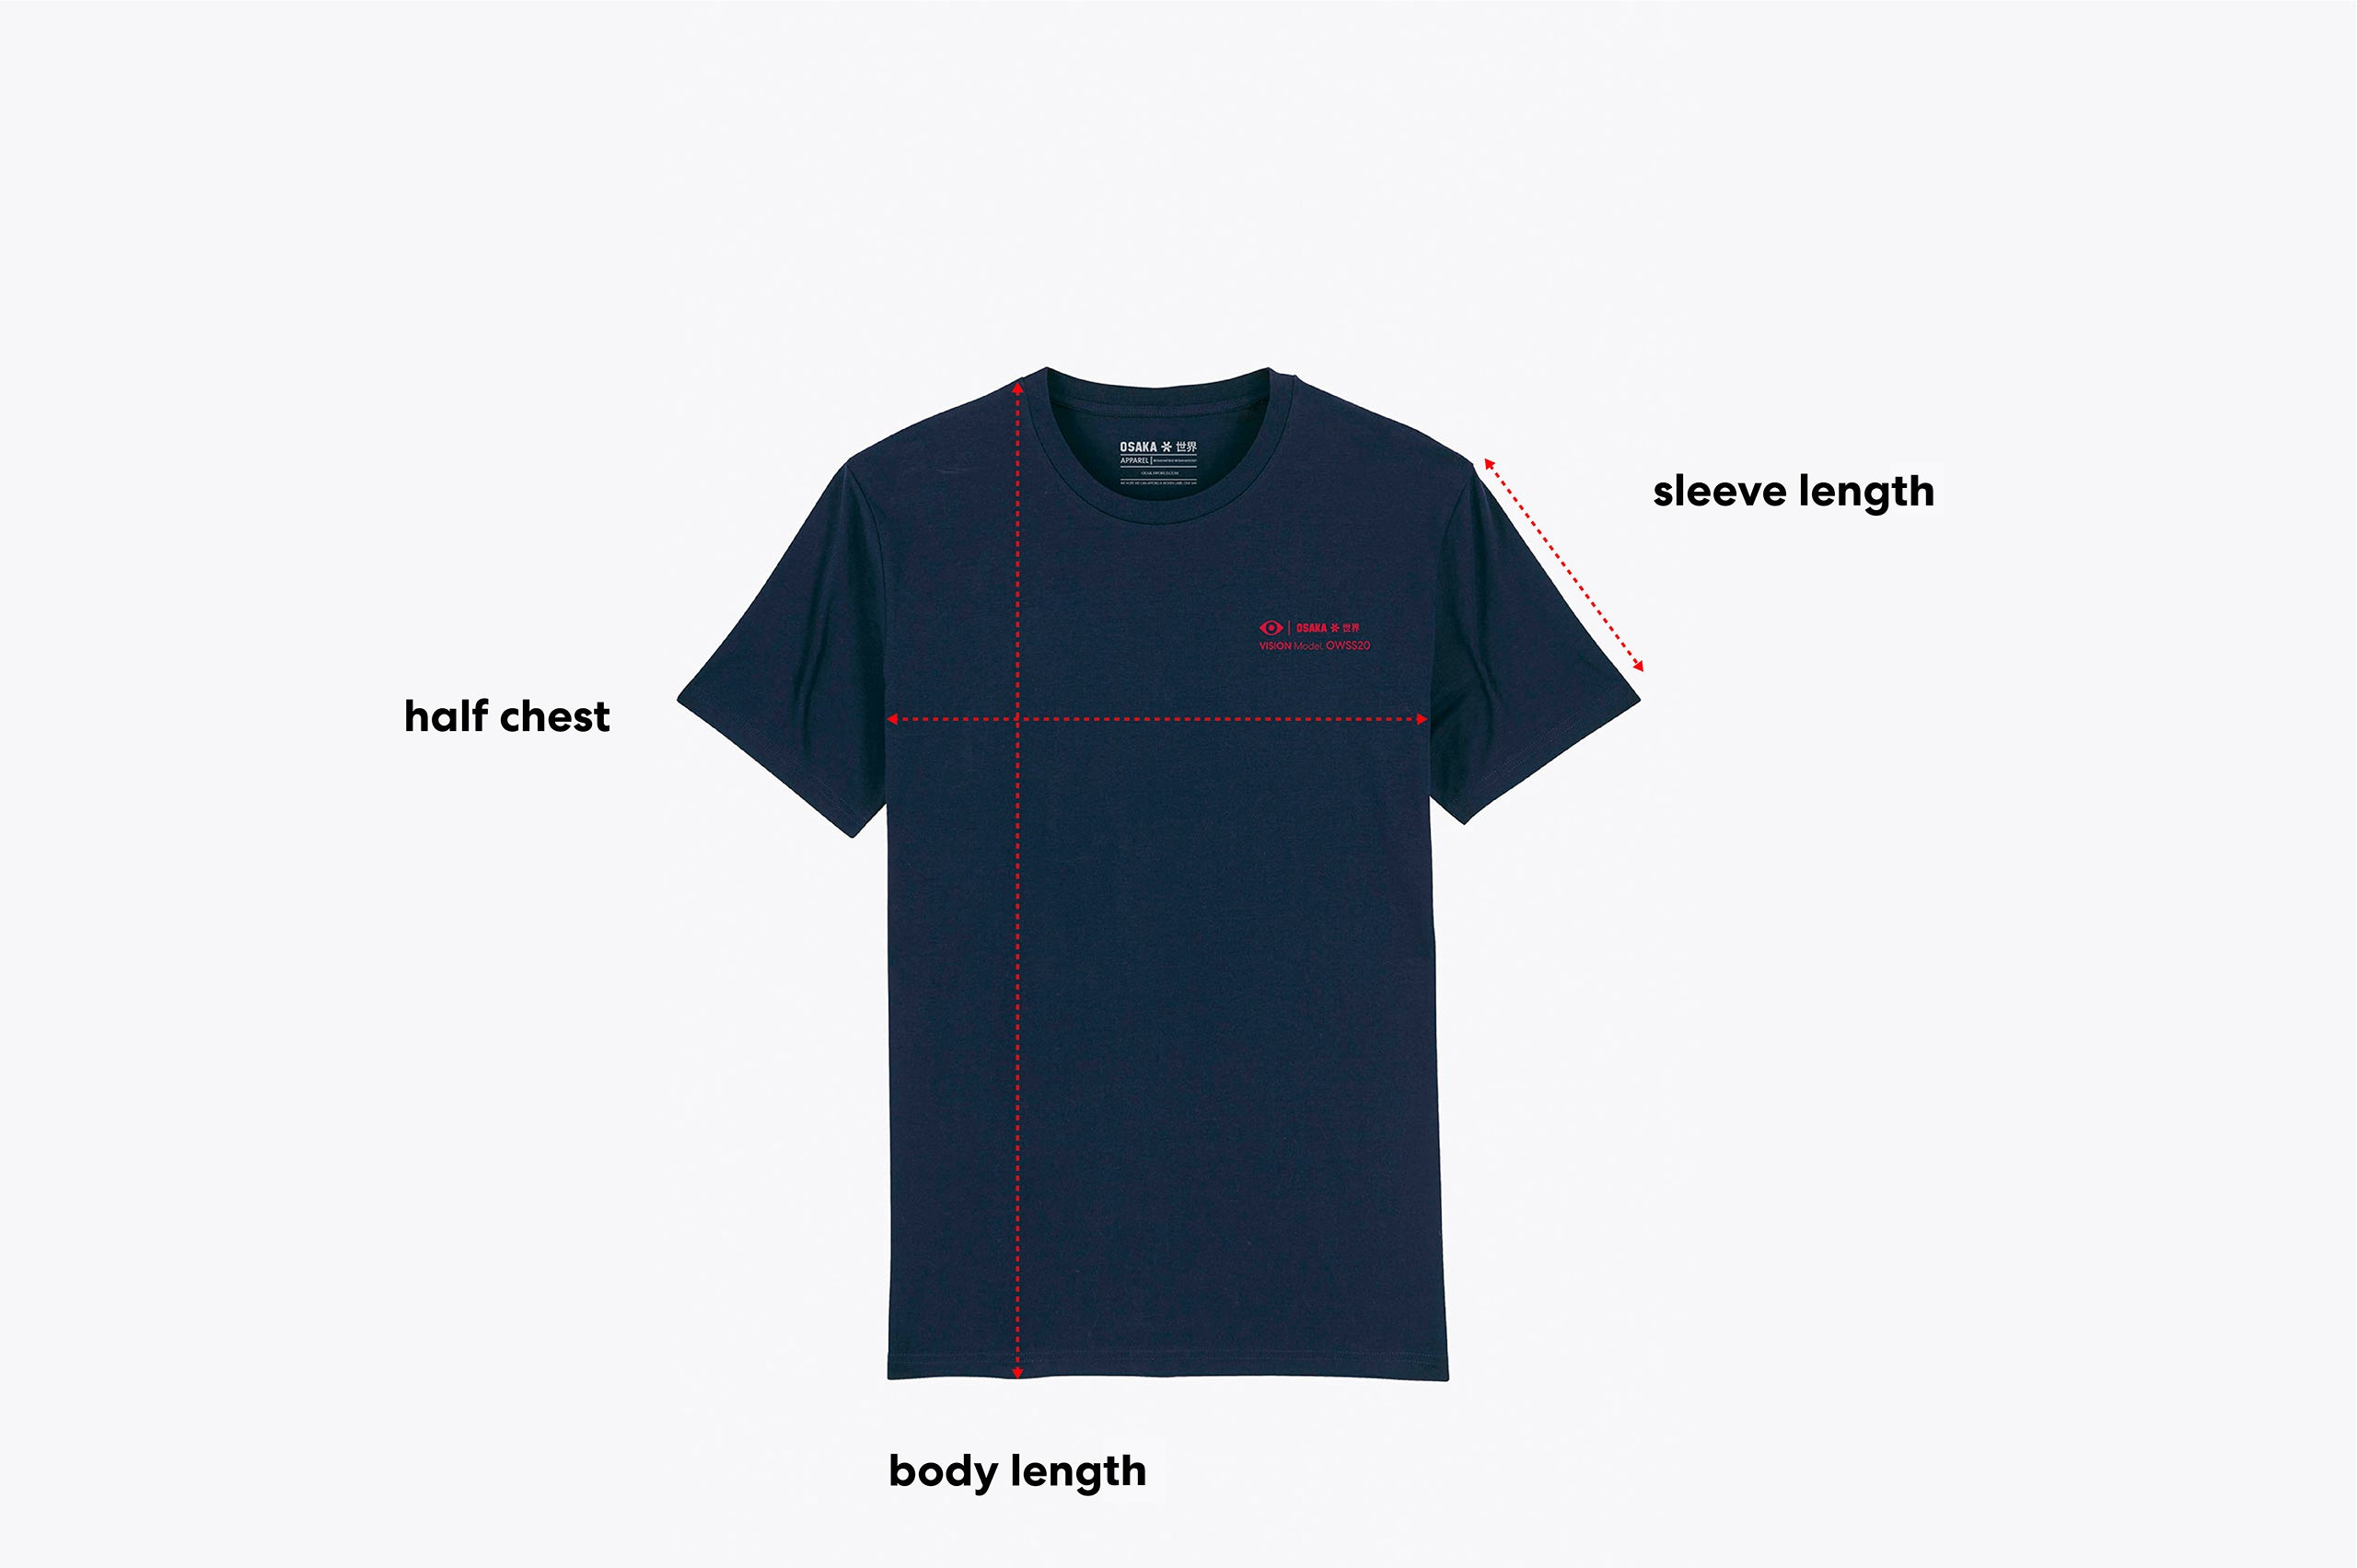 Size guide of an adult tee